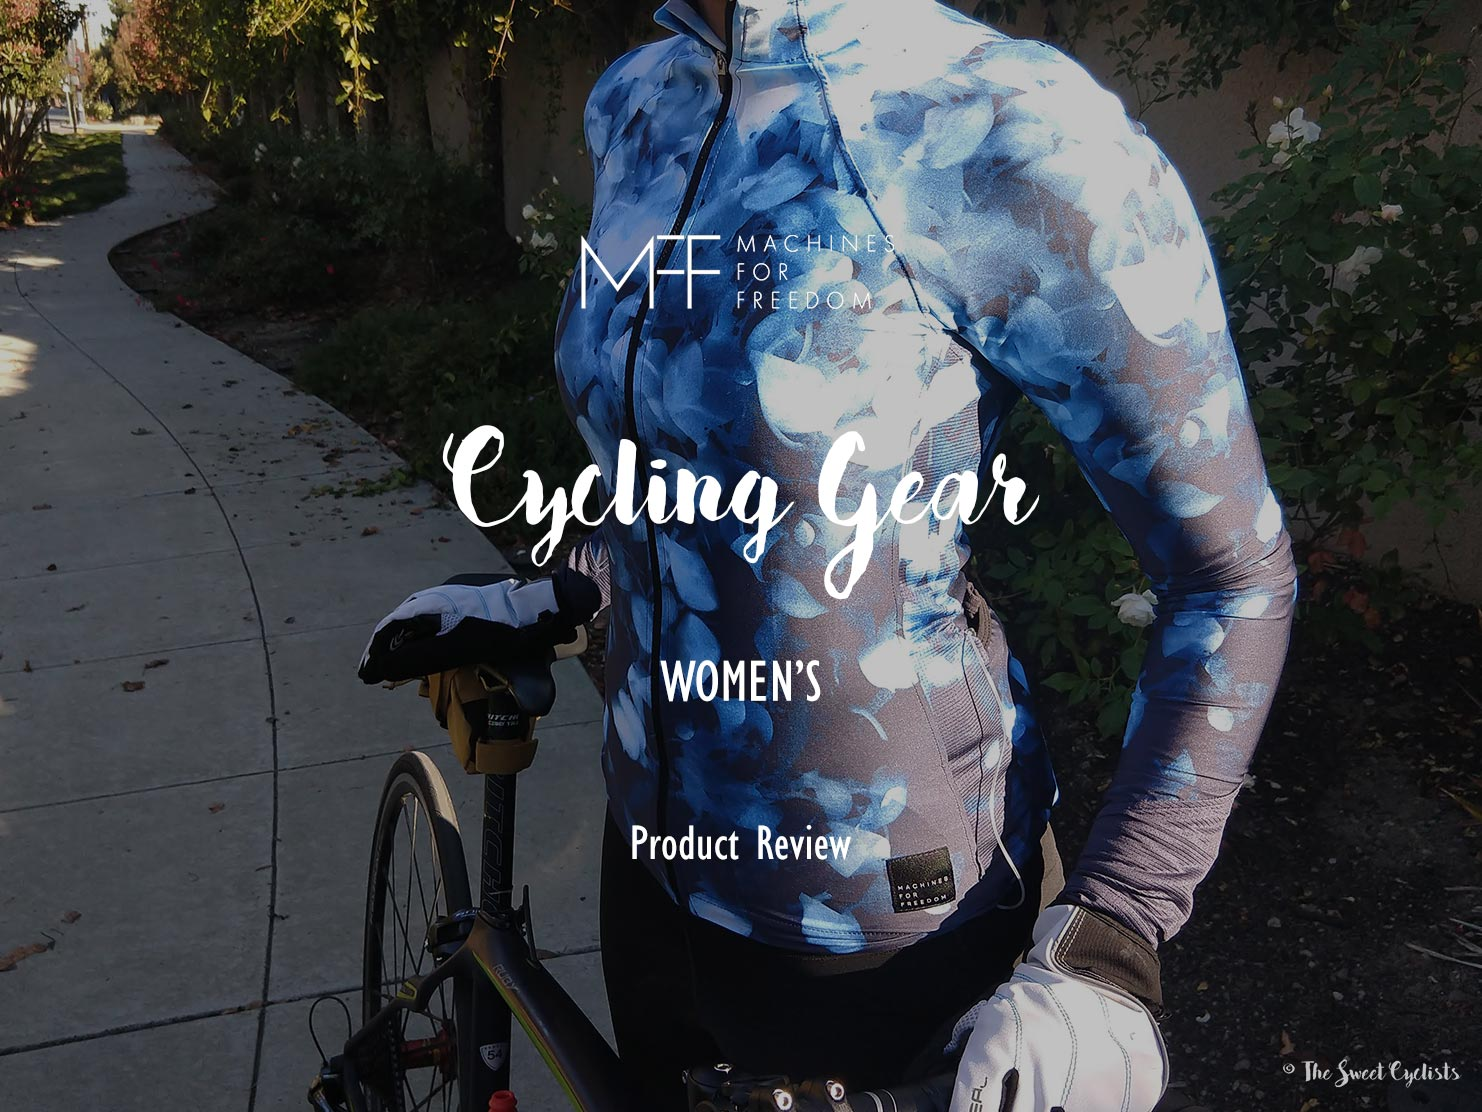 Machines For Freedom women's cycling gear